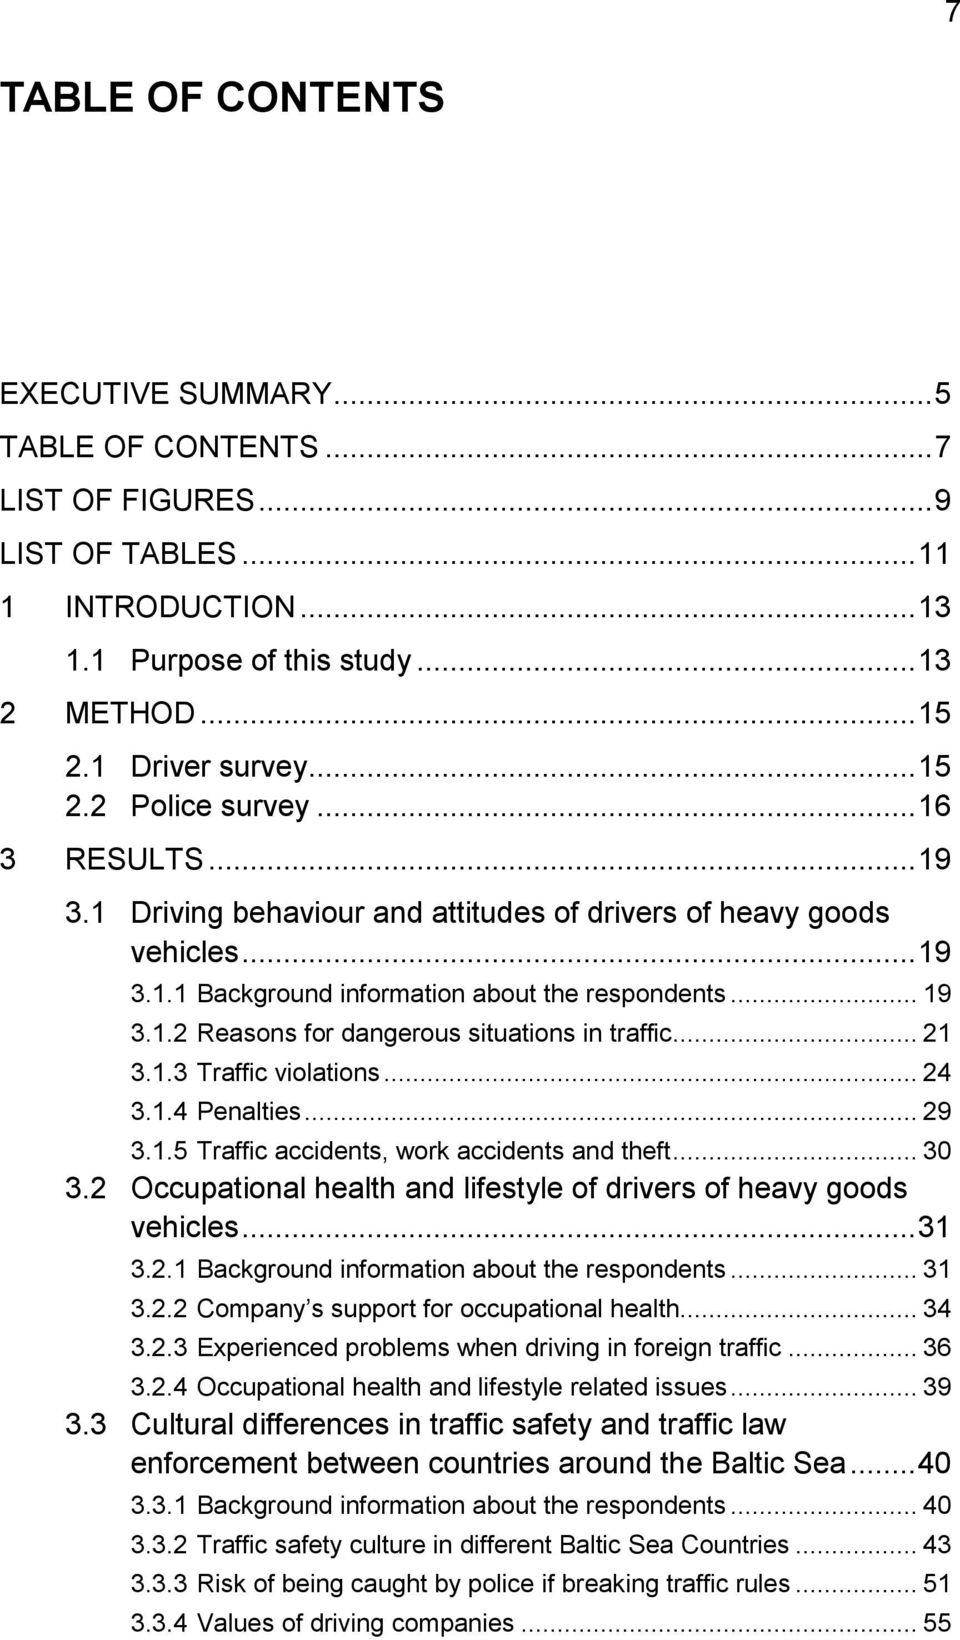 .. 21 3.1.3 Traffic violations... 24 3.1.4 Penalties... 29 3.1.5 Traffic accidents, work accidents and theft... 30 3.2 Occupational health and lifestyle of drivers of heavy goods vehicles... 31 3.2.1 Background information about the respondents.